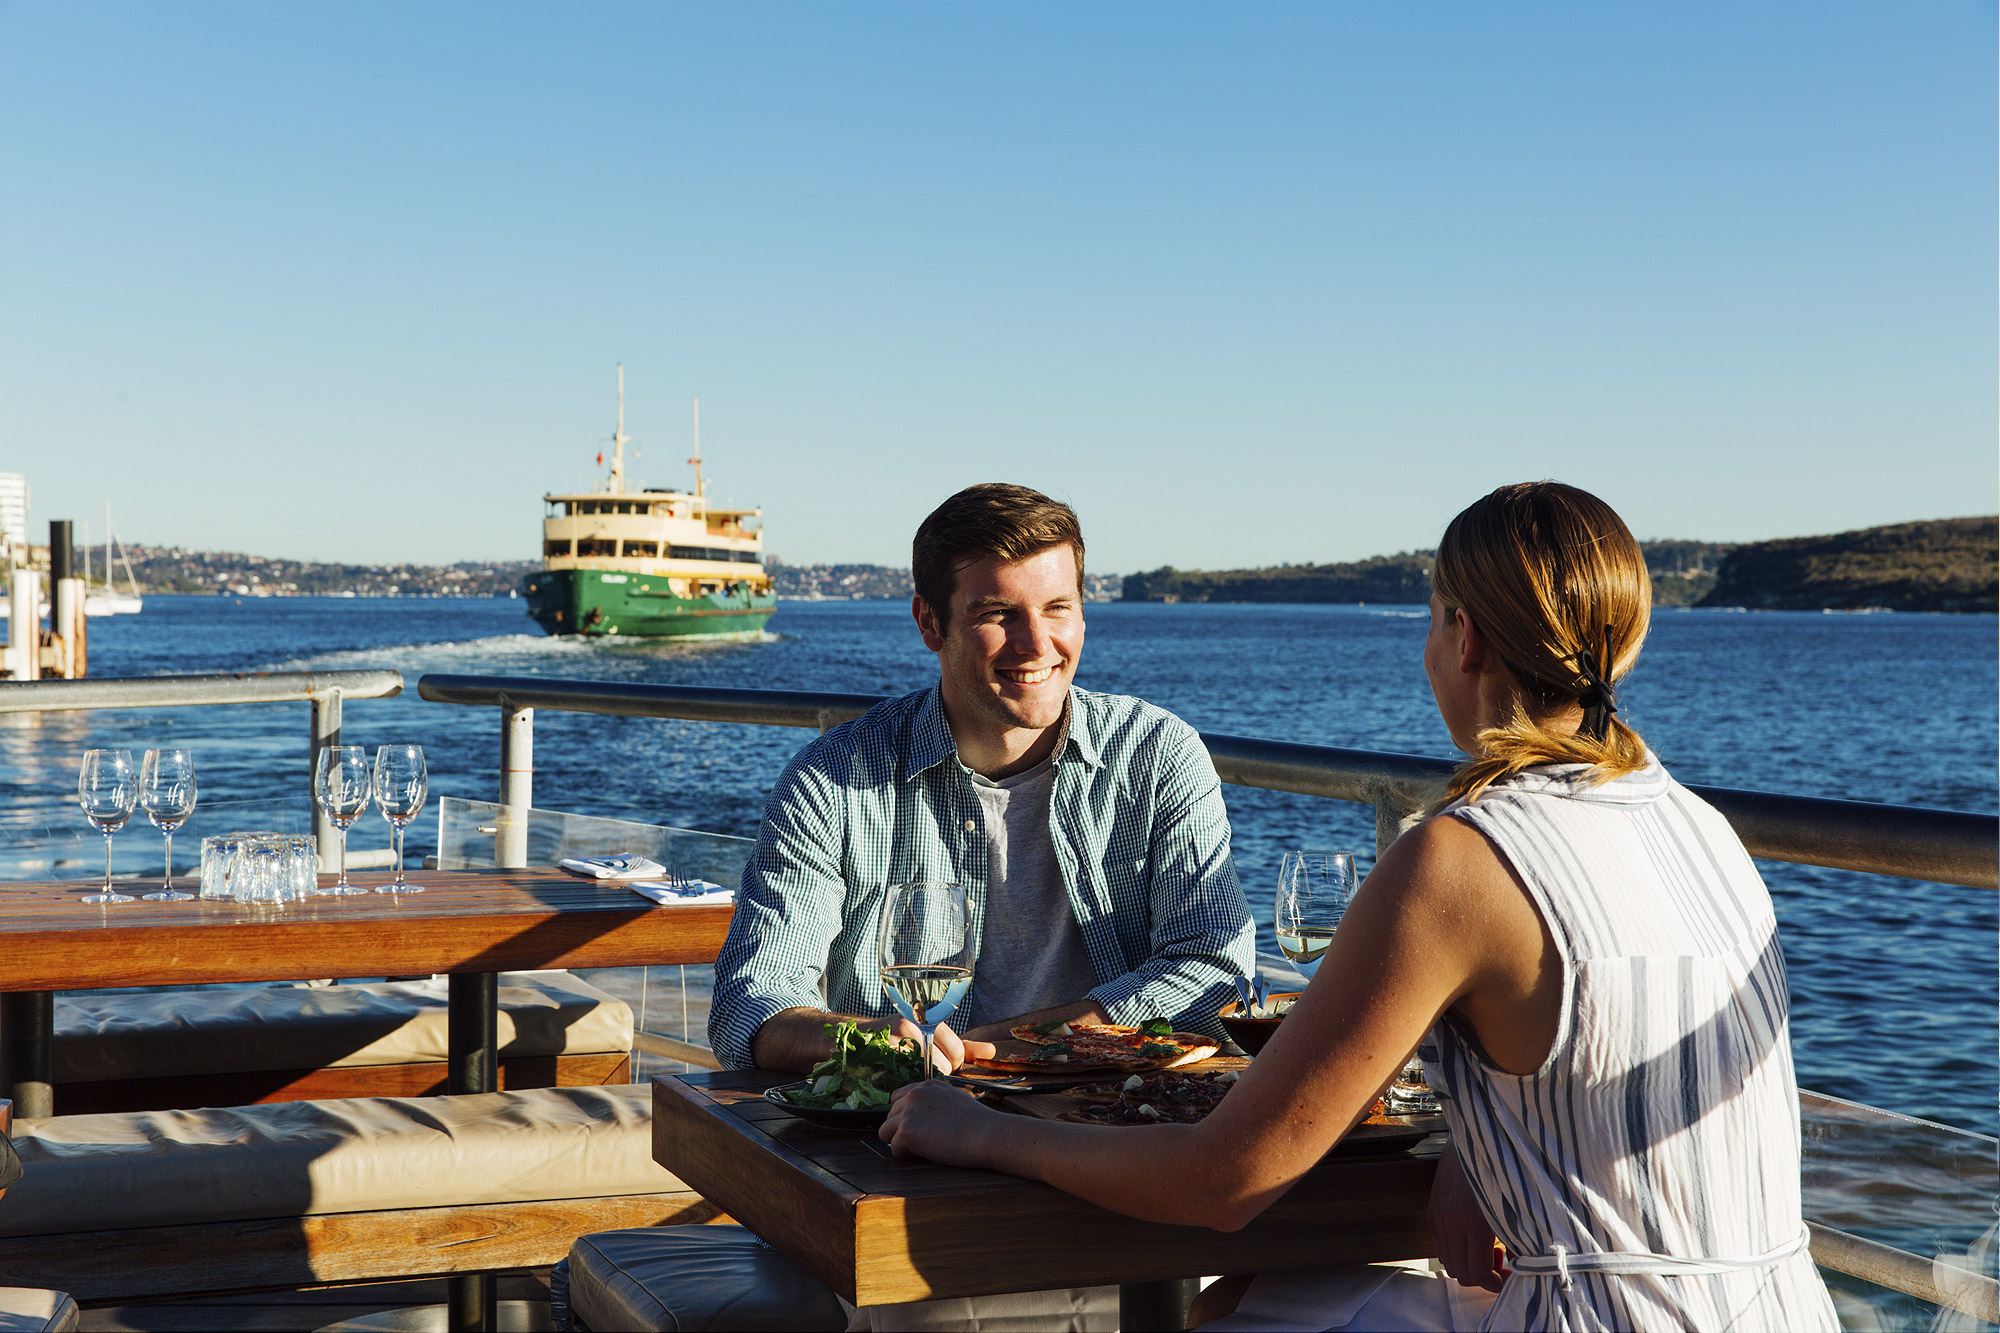 Enjoy food and drinks at Hugos Manly, at Manly Wharf